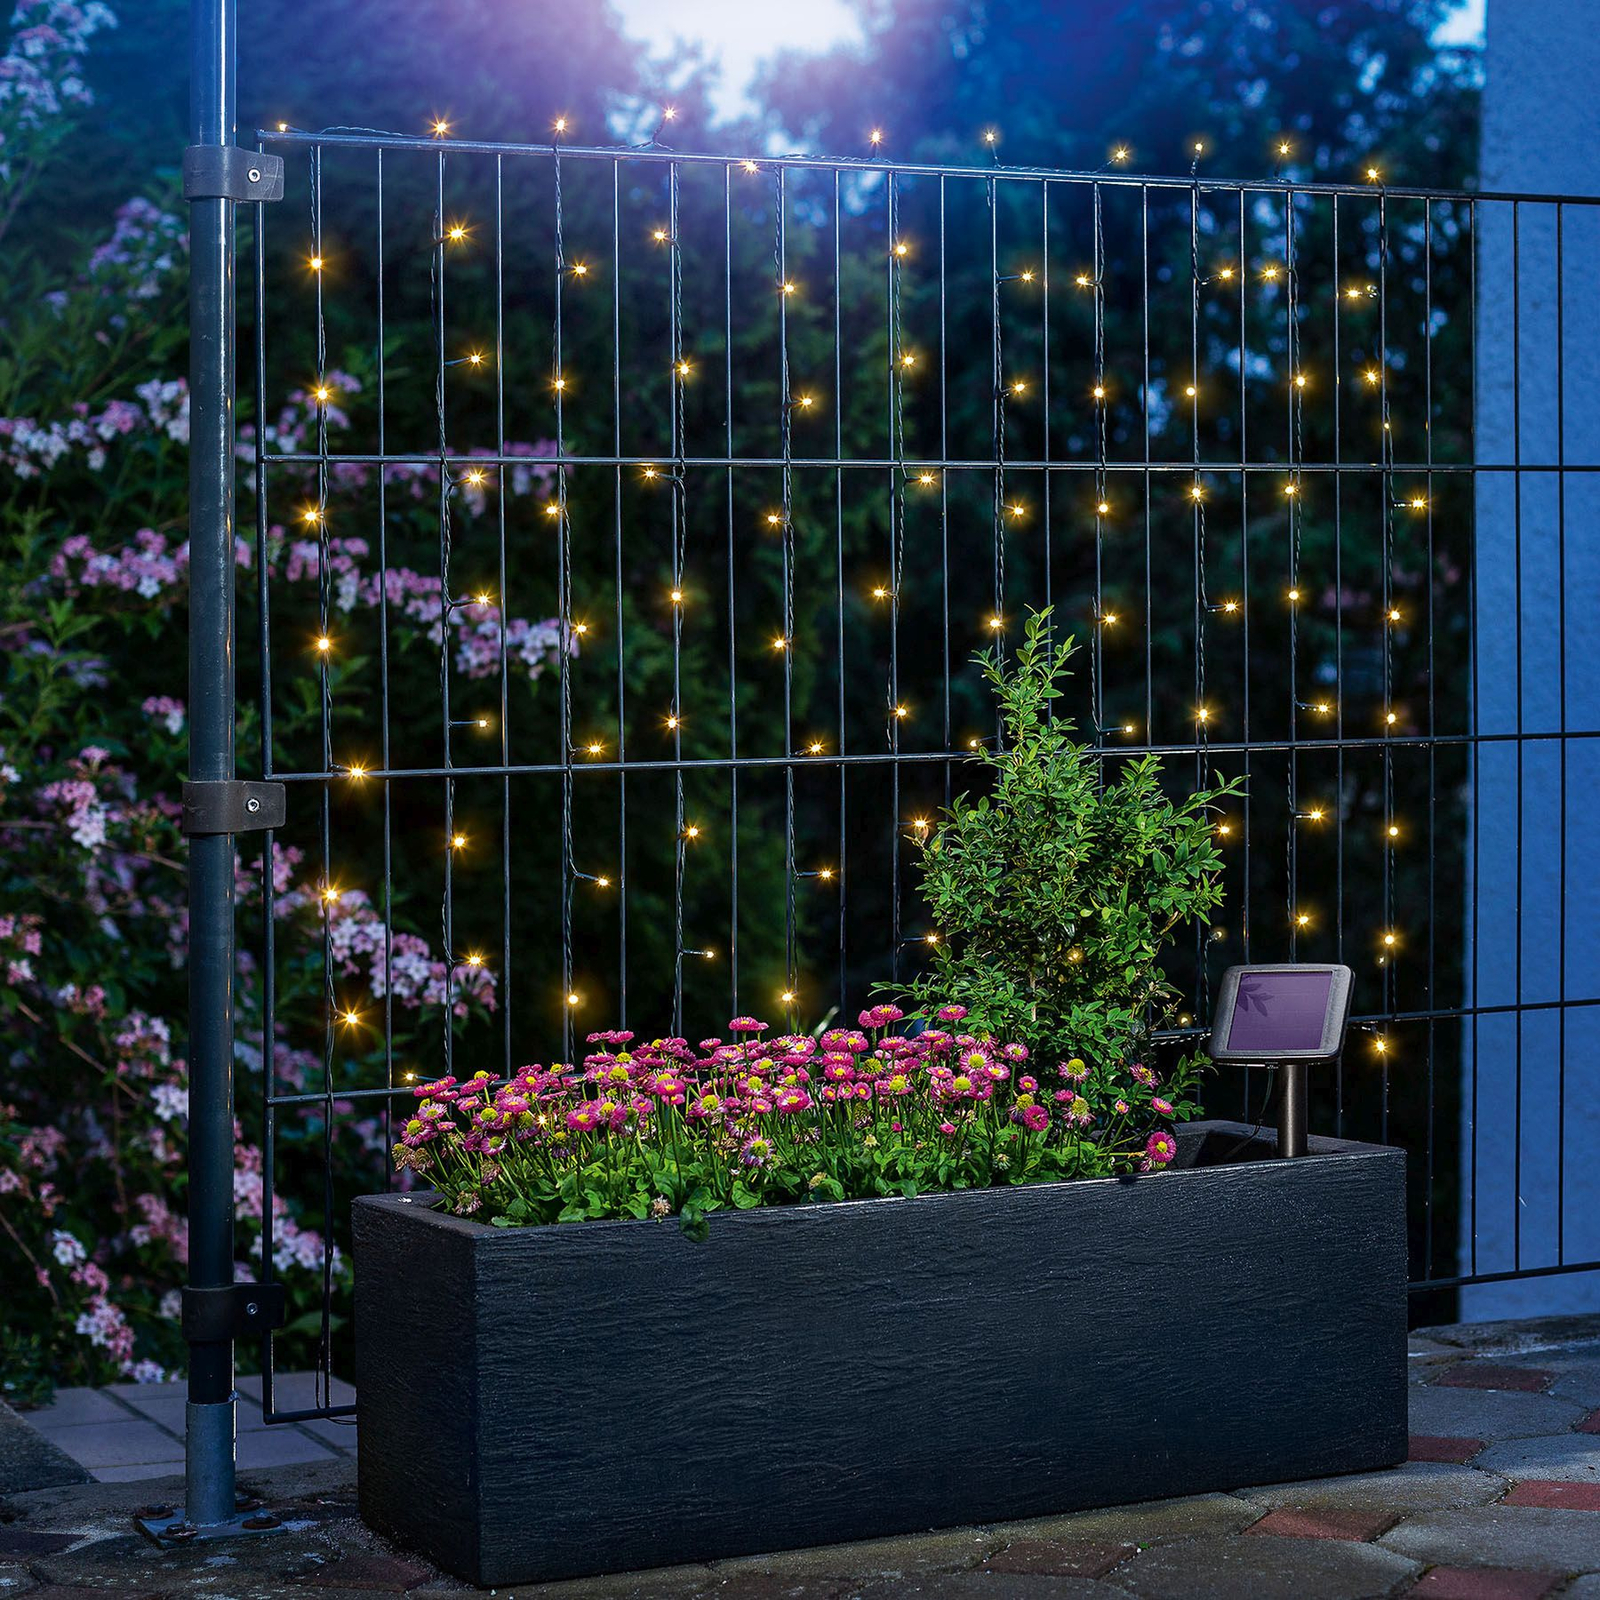 Premium LED solar string lights with 100 LEDs_3012284_1